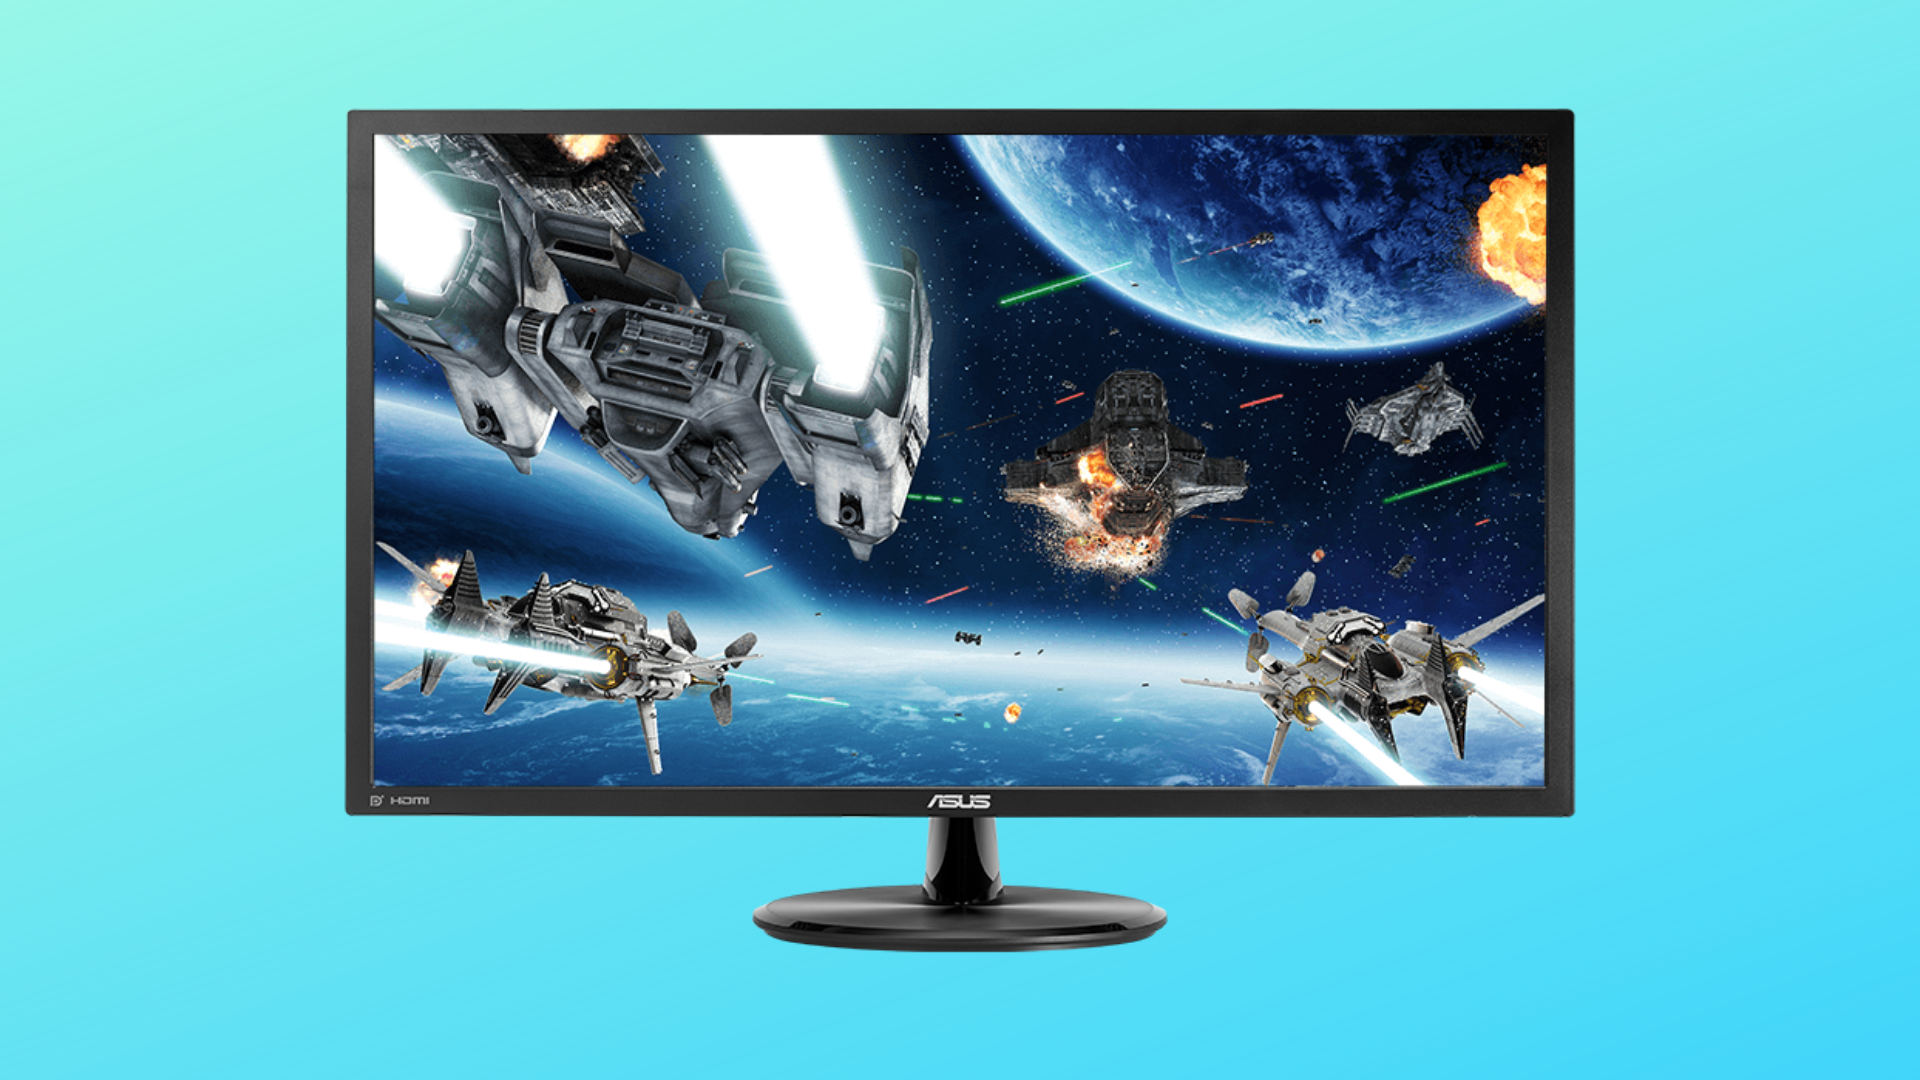 Monitor ASUS 28″ in super offerta: schermo 4K e 1 ms a soli 220€ - image  on https://www.zxbyte.com